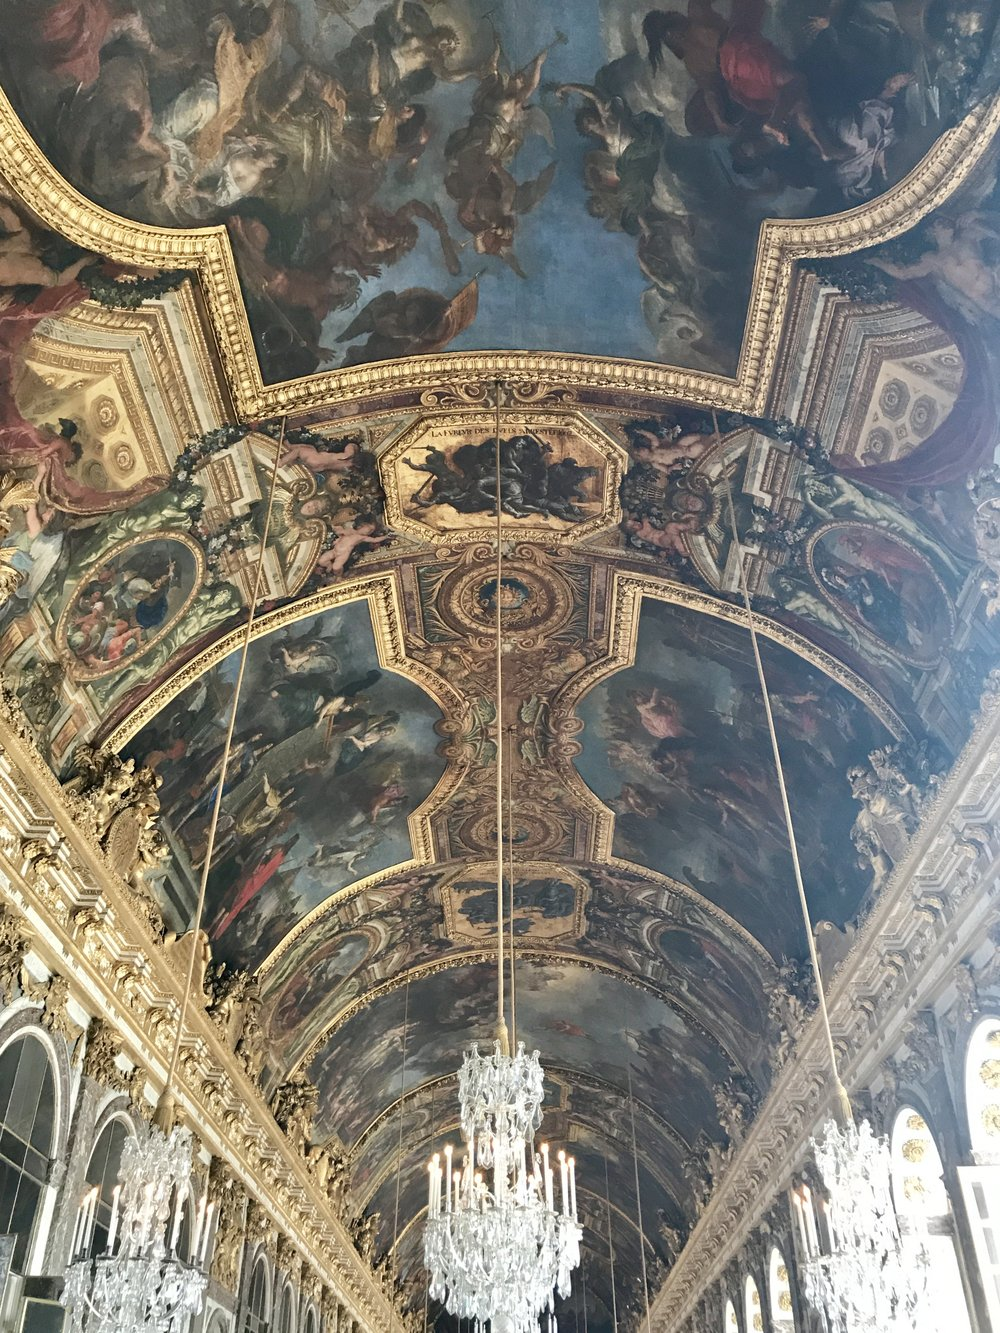 Hall of Mirrors at Versailles Palace. You can use this image to connect to the energy of abundance. It's all around us!